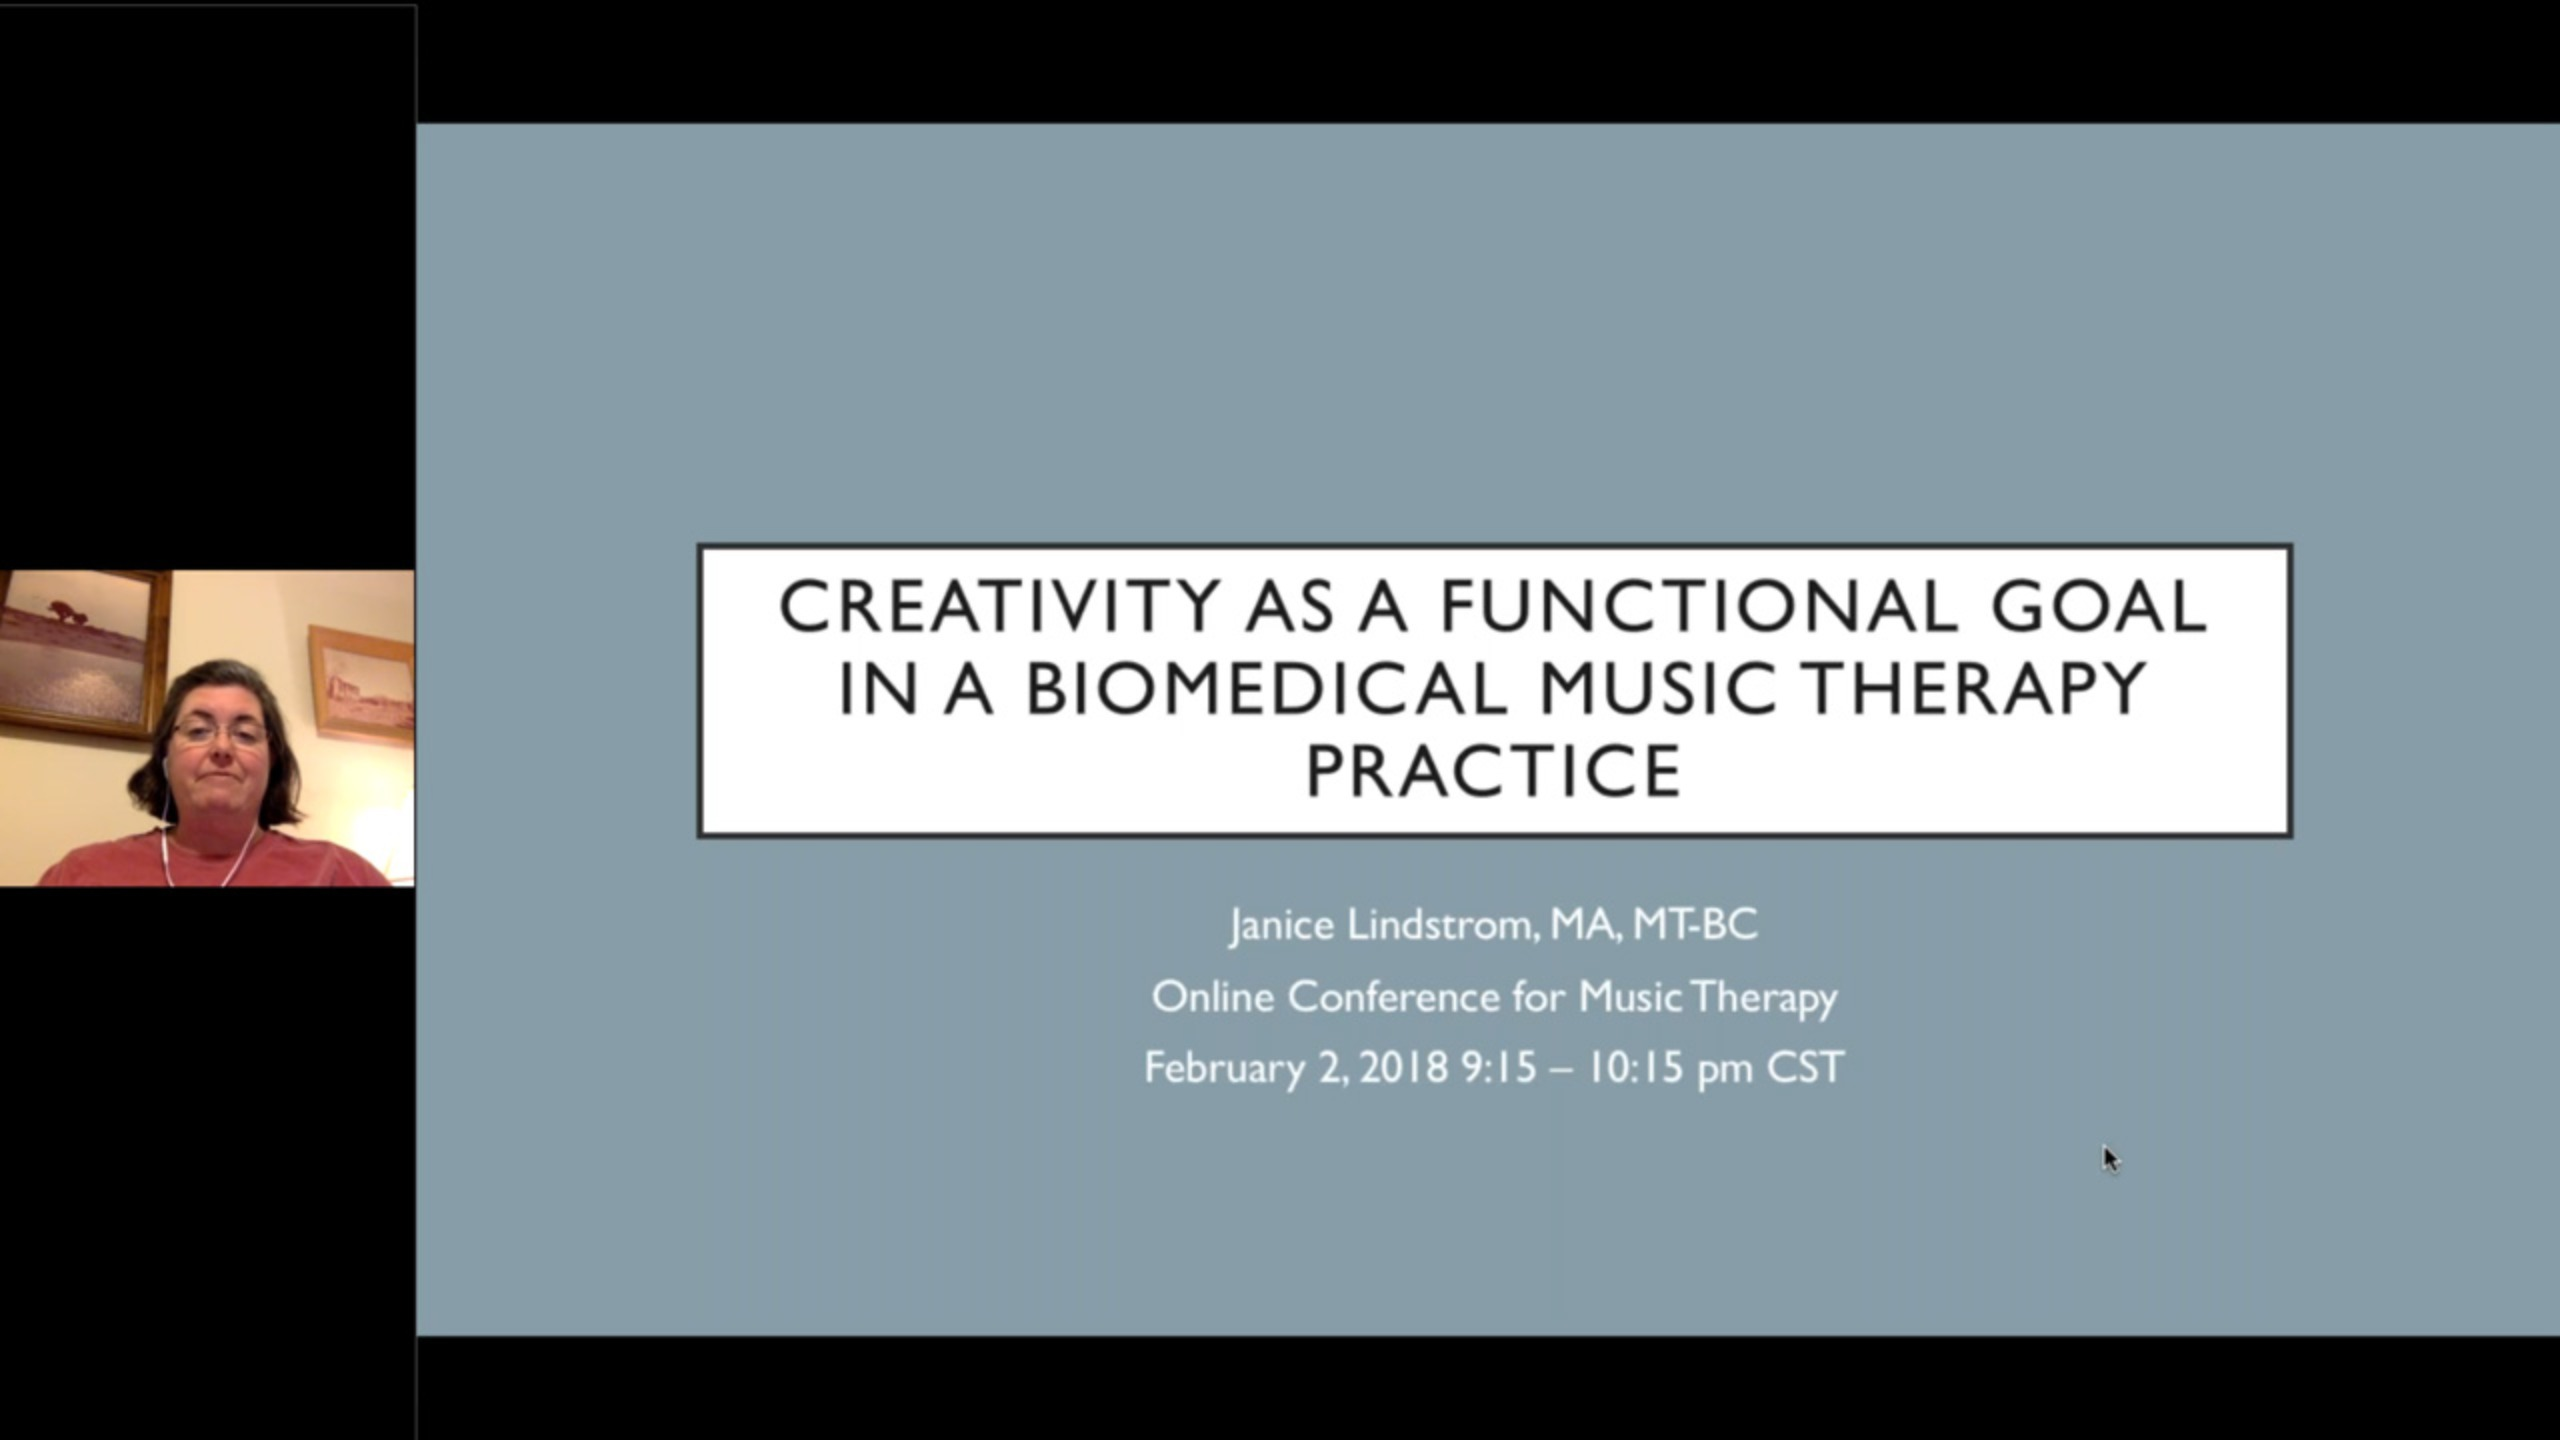 Creativity as a Functional Goal in a Biomedical Music Therapy Practice